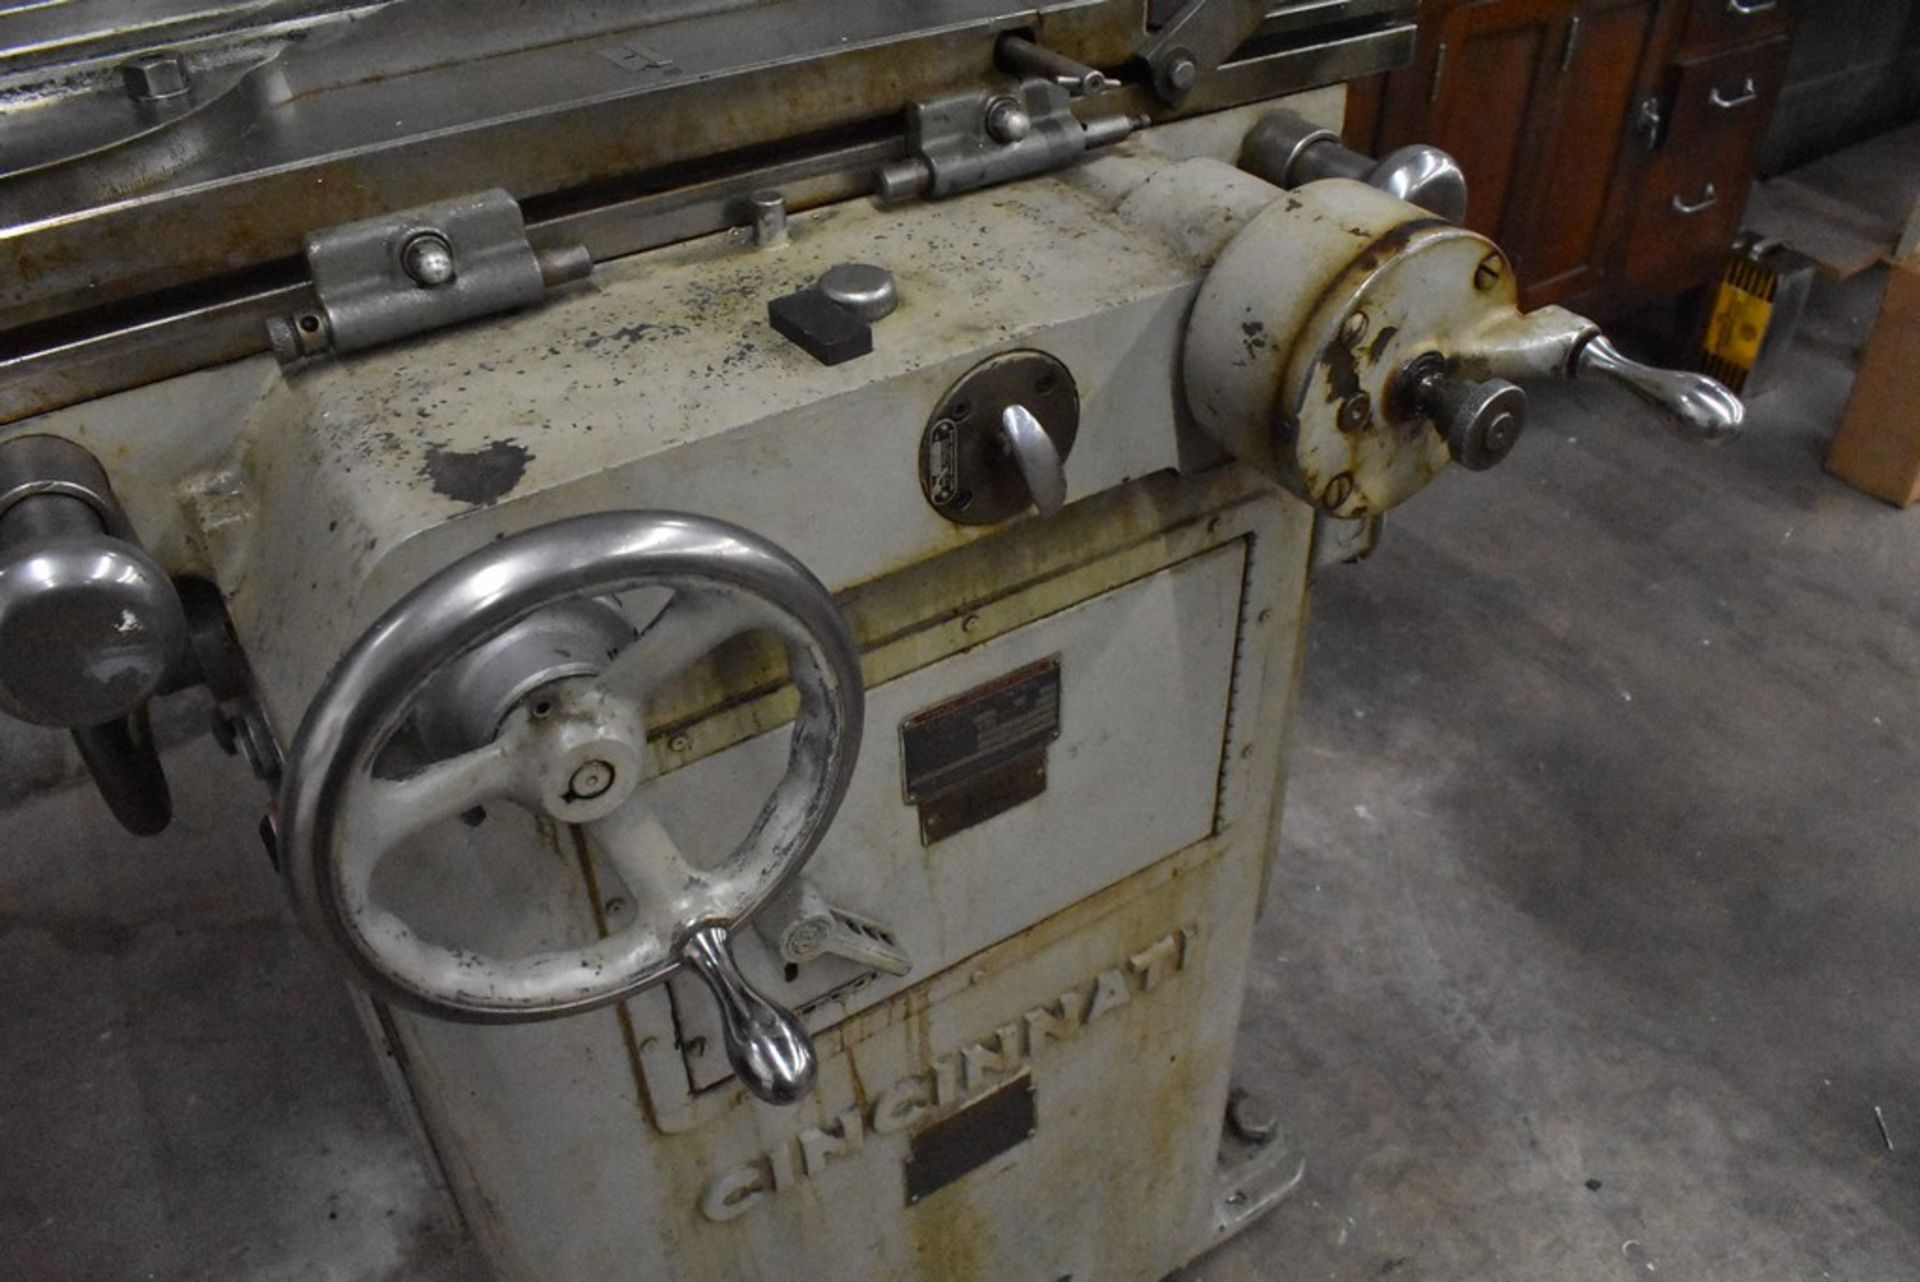 CINCINNATI NO. 2 TOOL AND CUTTER GRINDER, S/N 1D2T1Z-771, WITH MOTORIZED WORK HEAD - Image 13 of 14